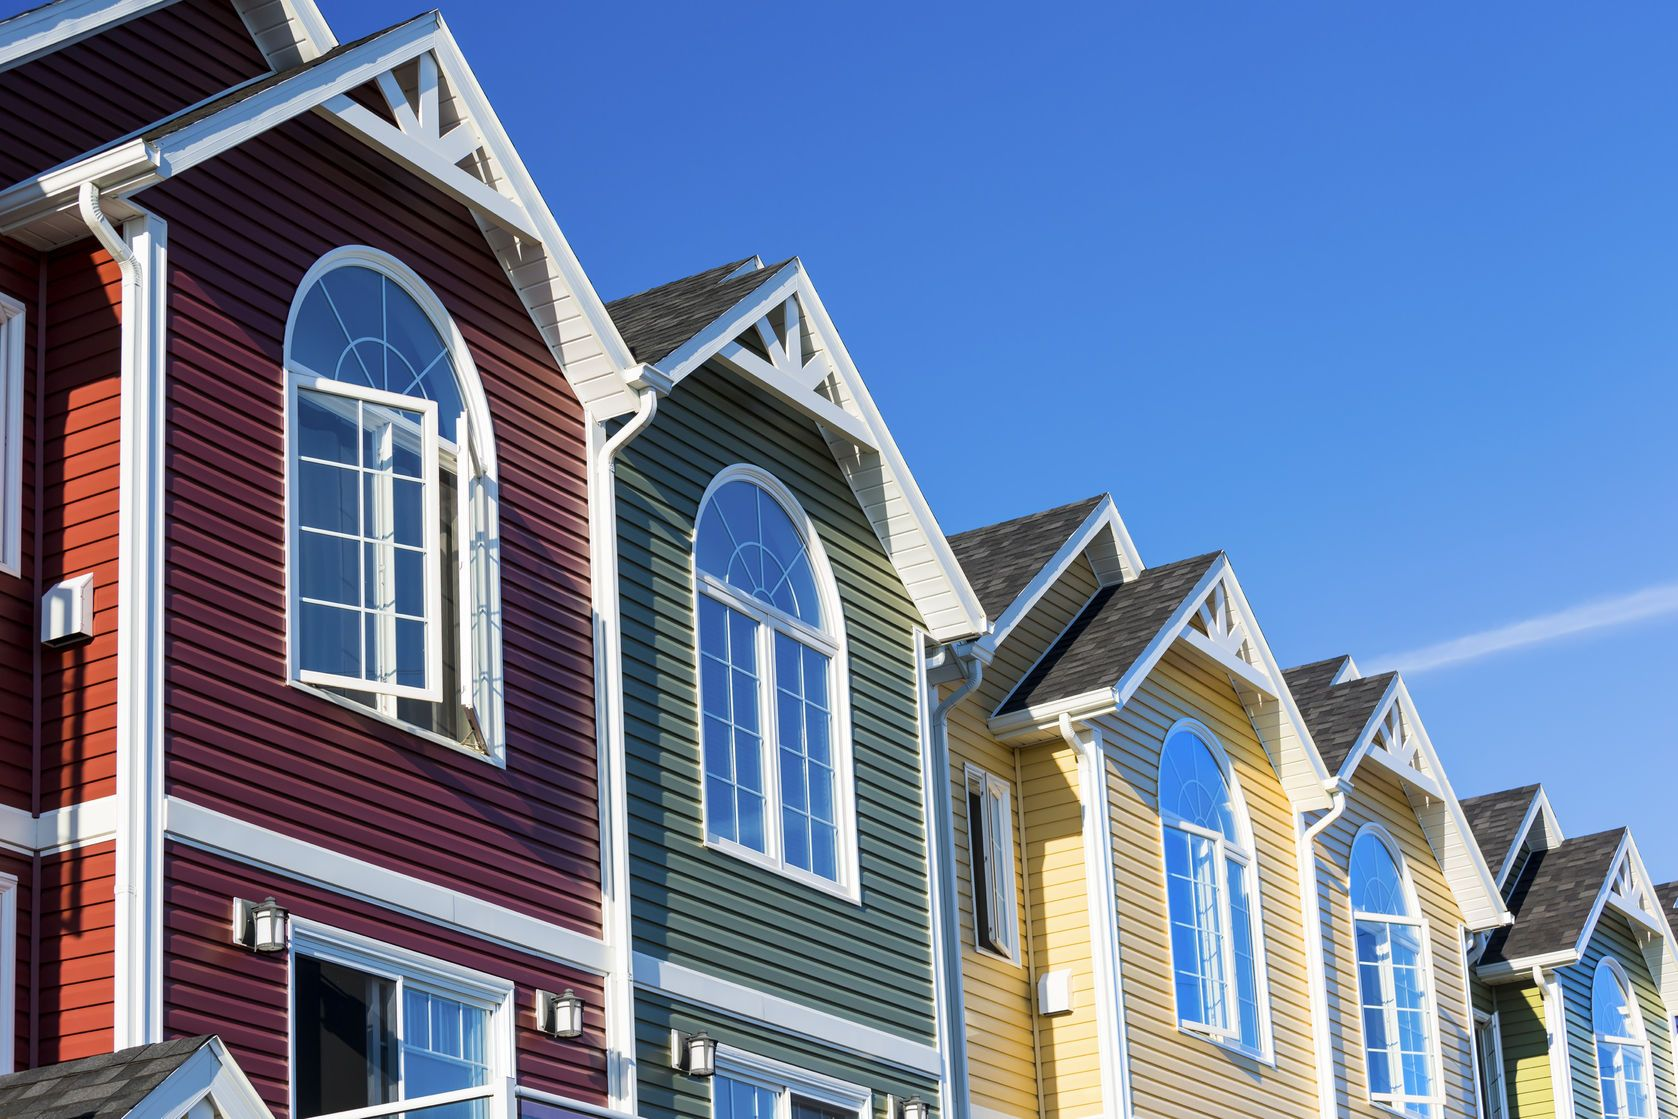 Row Of Colorful Townhouses With Varied Colored Vinyl Siding Photo Remodeling Vinyl Siding House Siding Materials House Siding